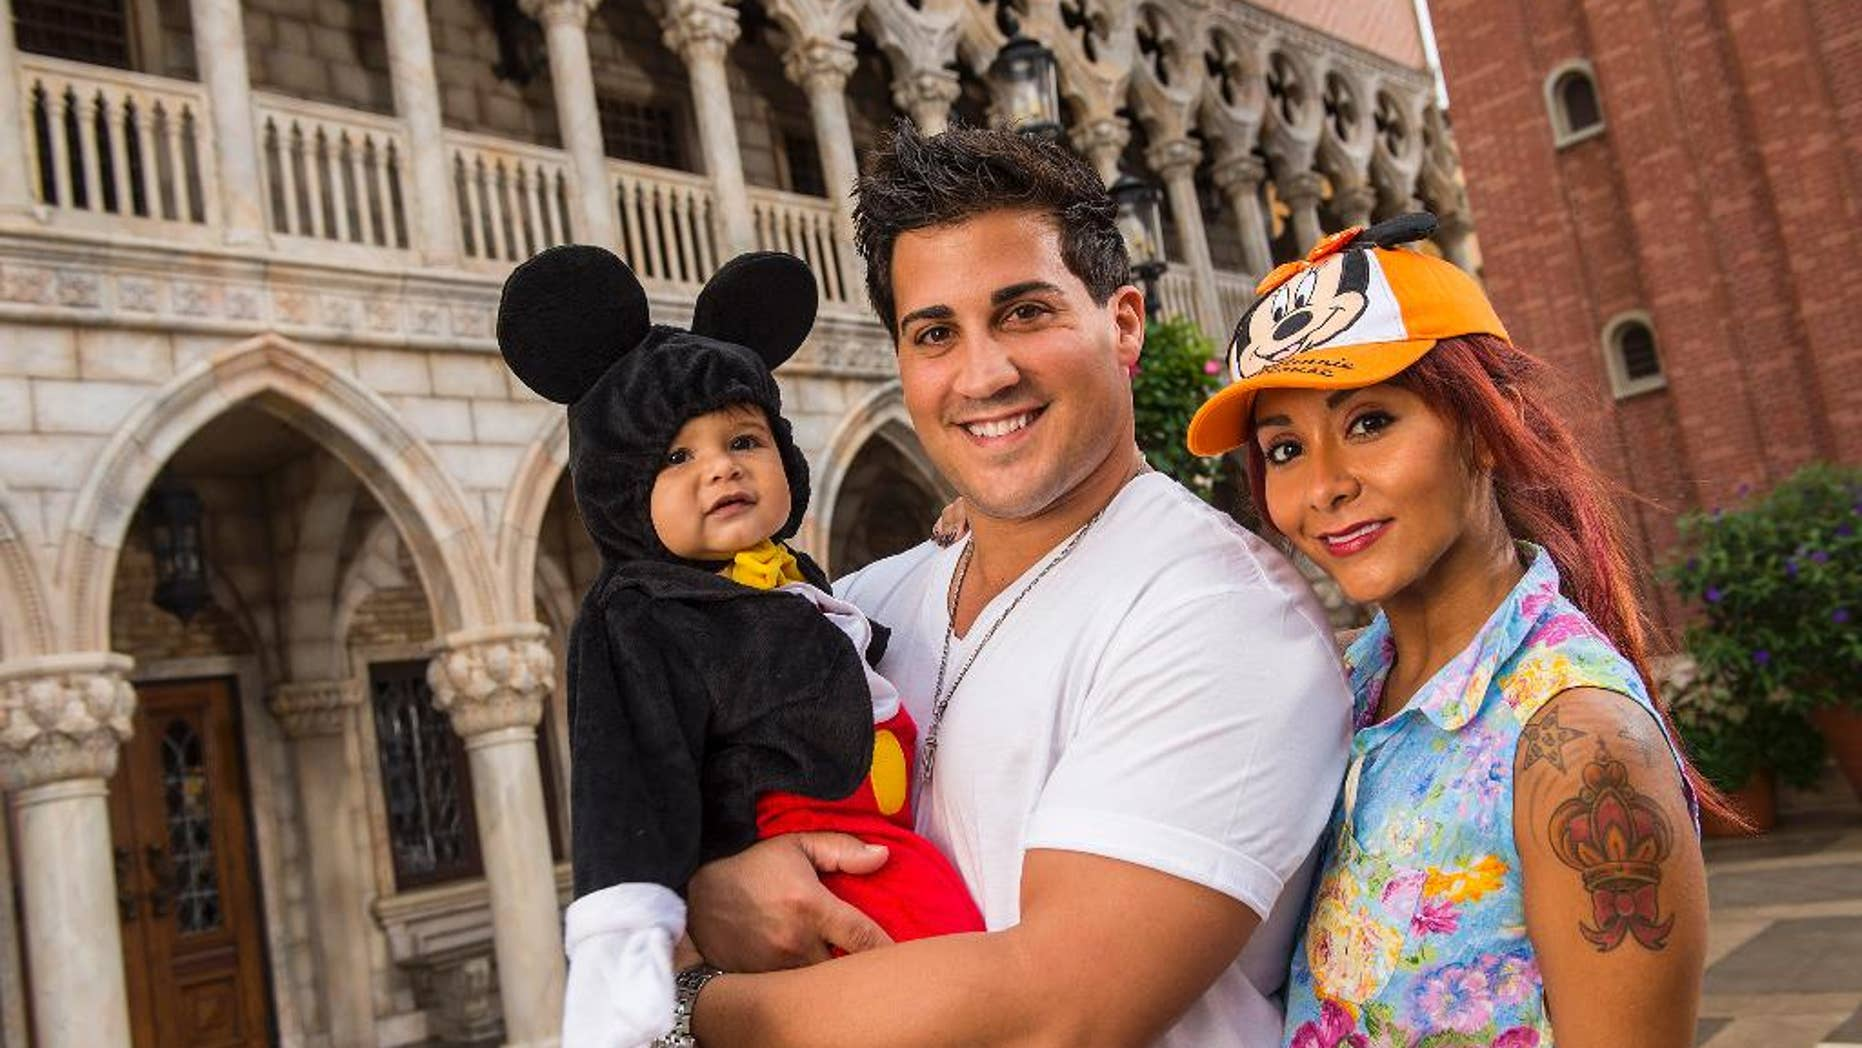 """FILE - This image released by Disney shows TV personality Nicole """"Snooki"""" Polizzi, right, from """"Jersey Shore,"""" with her fiance Jionni LaValle and their one-year-old son Lorenzo inside the Italy pavilion in the Epcot theme park, in this Sept. 27, 2013 file photo taken  at Walt Disney World in Lake Buena Vista, Fla. The cast member of the reality series """"Jersey Shore"""" and """"Snooki and JWoww"""" spinoff intends to marry her fiance Jionni LaValle at the Venetian banquet hall in Garfield in the fall 2014. (AP Photo/Disney, Matt Stroshane, File)"""